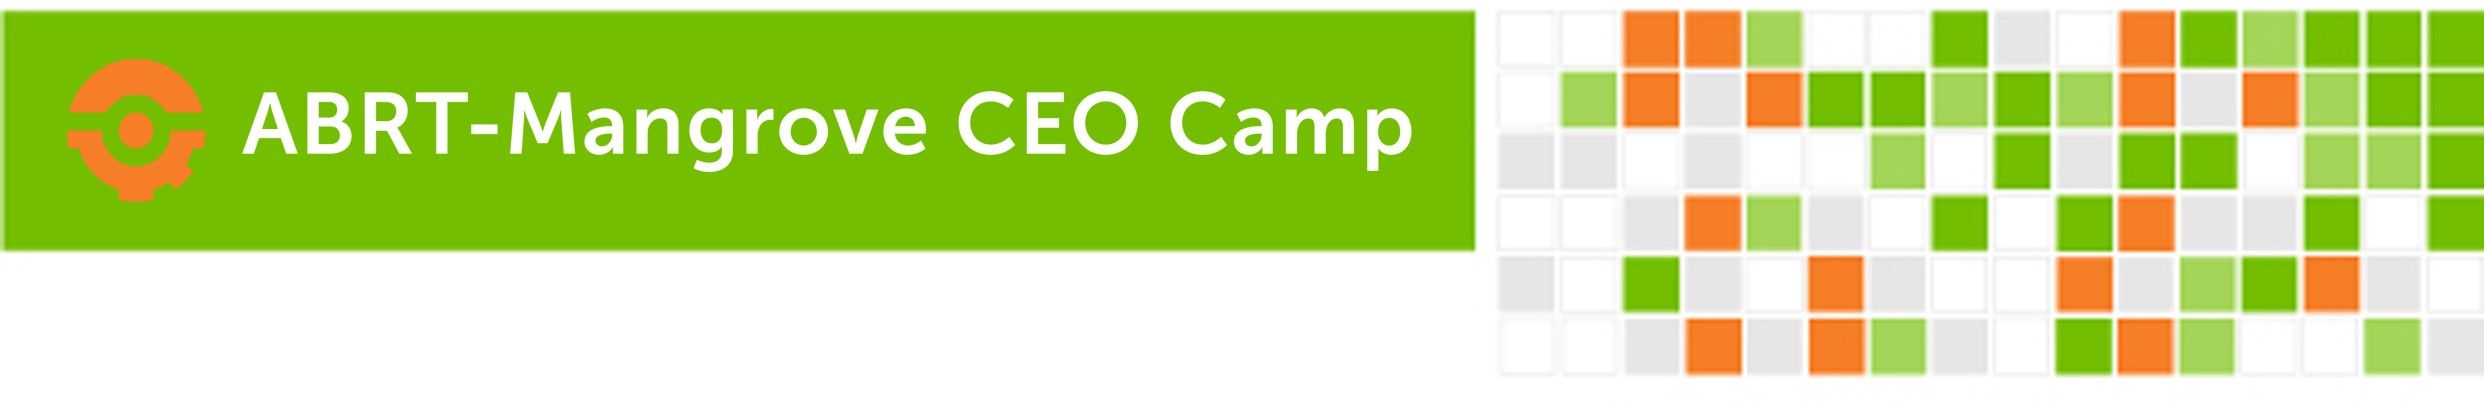 CEO Camp